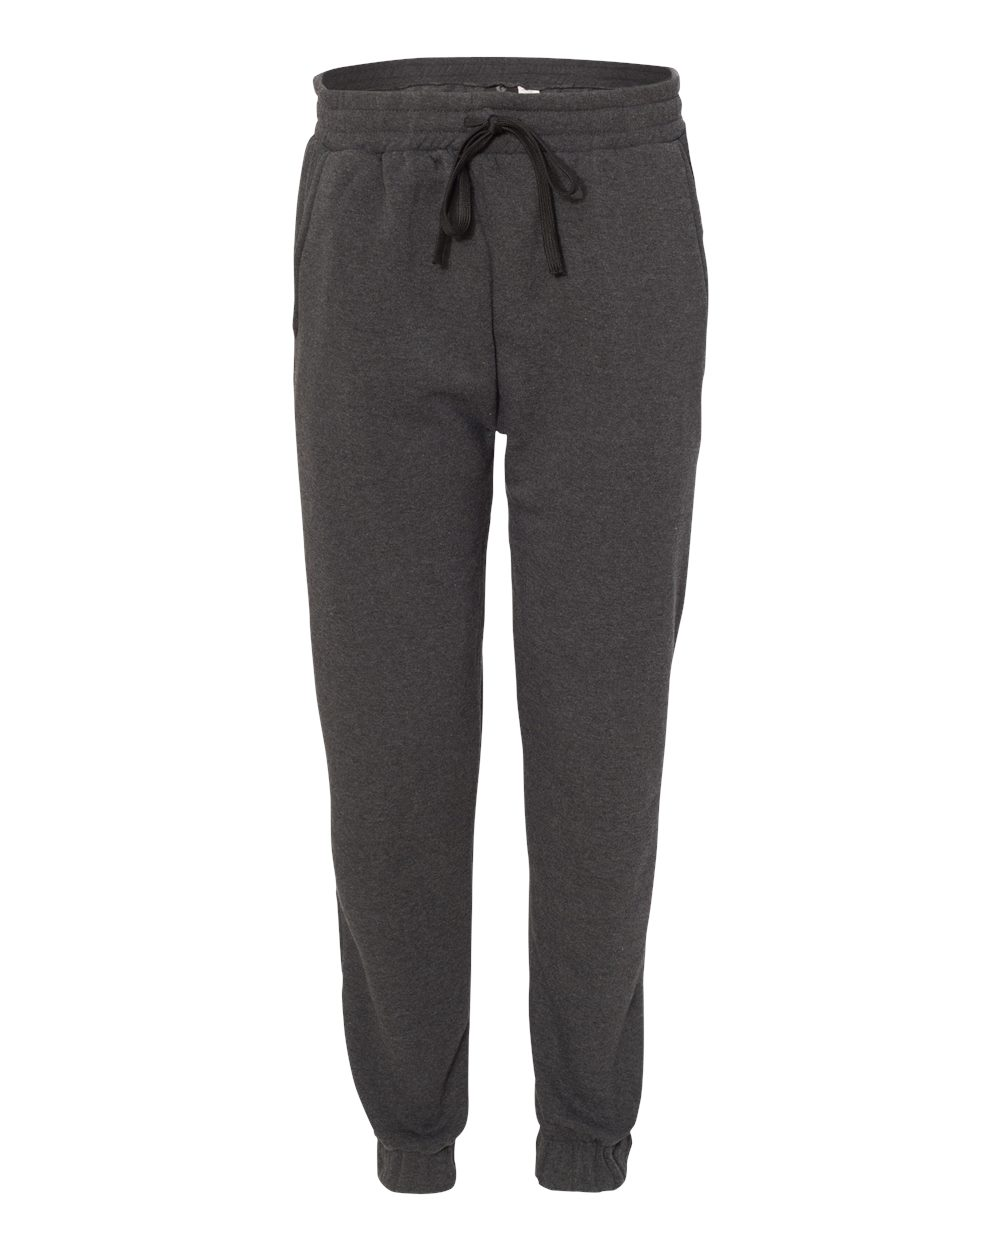 Burnside-Mens-Sweatpants-Fleece-Joggers-With-Pockets-8800-up-to-3XL thumbnail 9